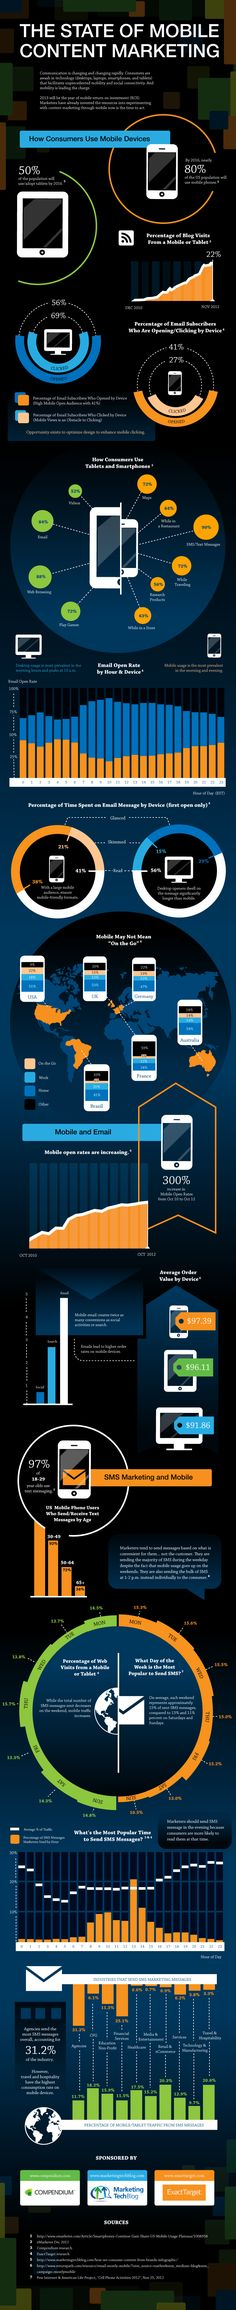 Mobile-Content-Marketing-Infographic